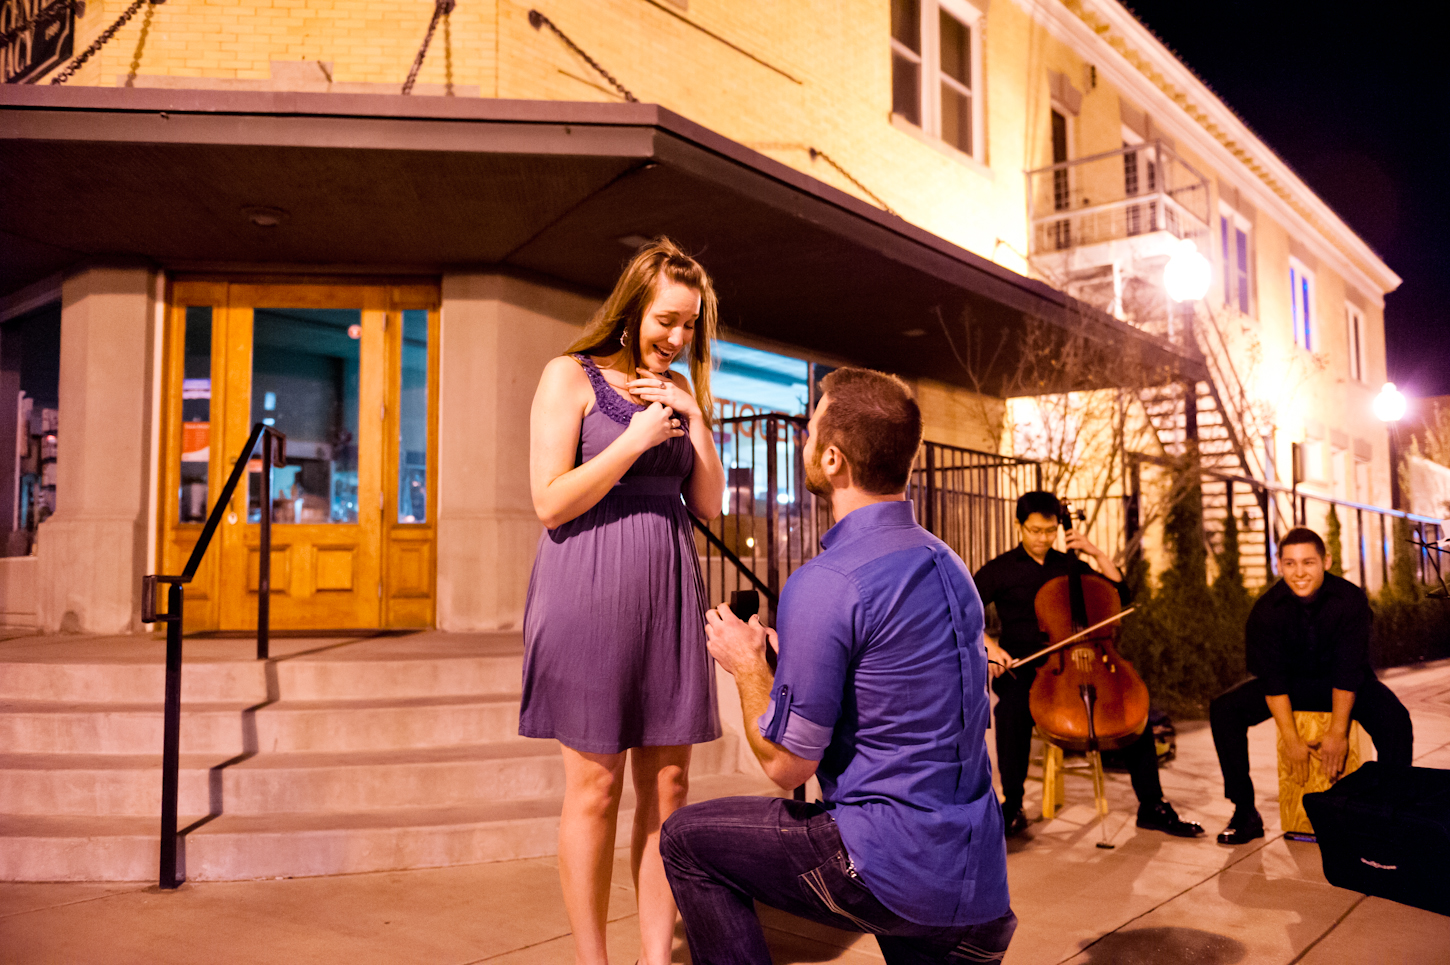 Image 9 of Proposal after Salsa Dancing